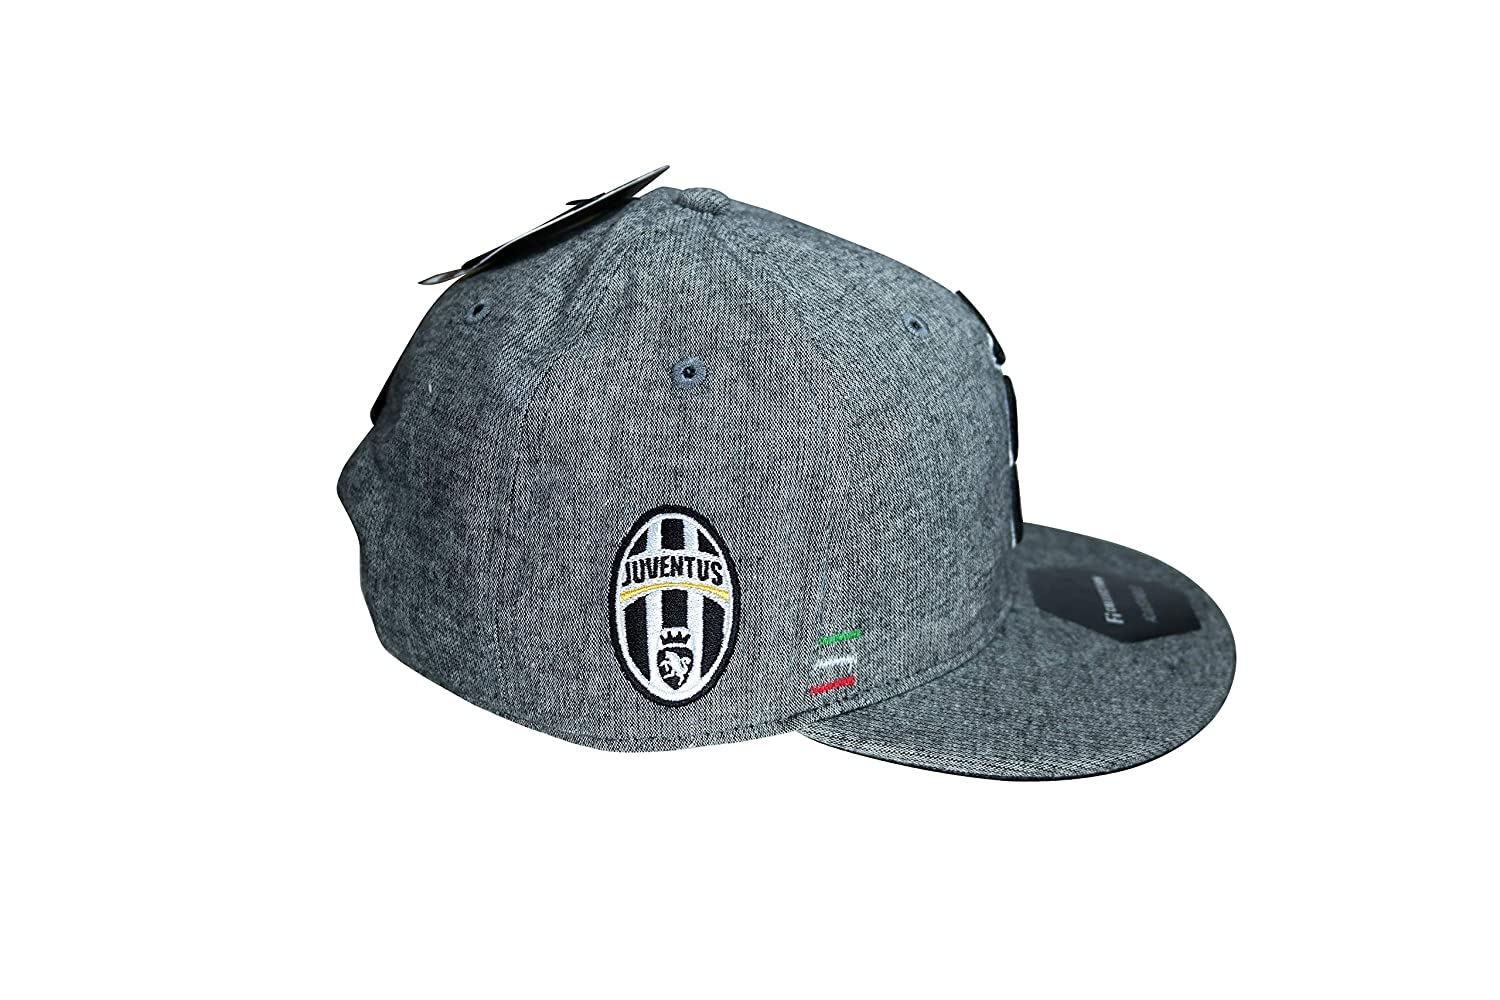 c211bf562f283 Amazon.com   Juventus F.C. Authentic Official Licensed Classic Soccer Cap  Hat - 1-2   Sports   Outdoors